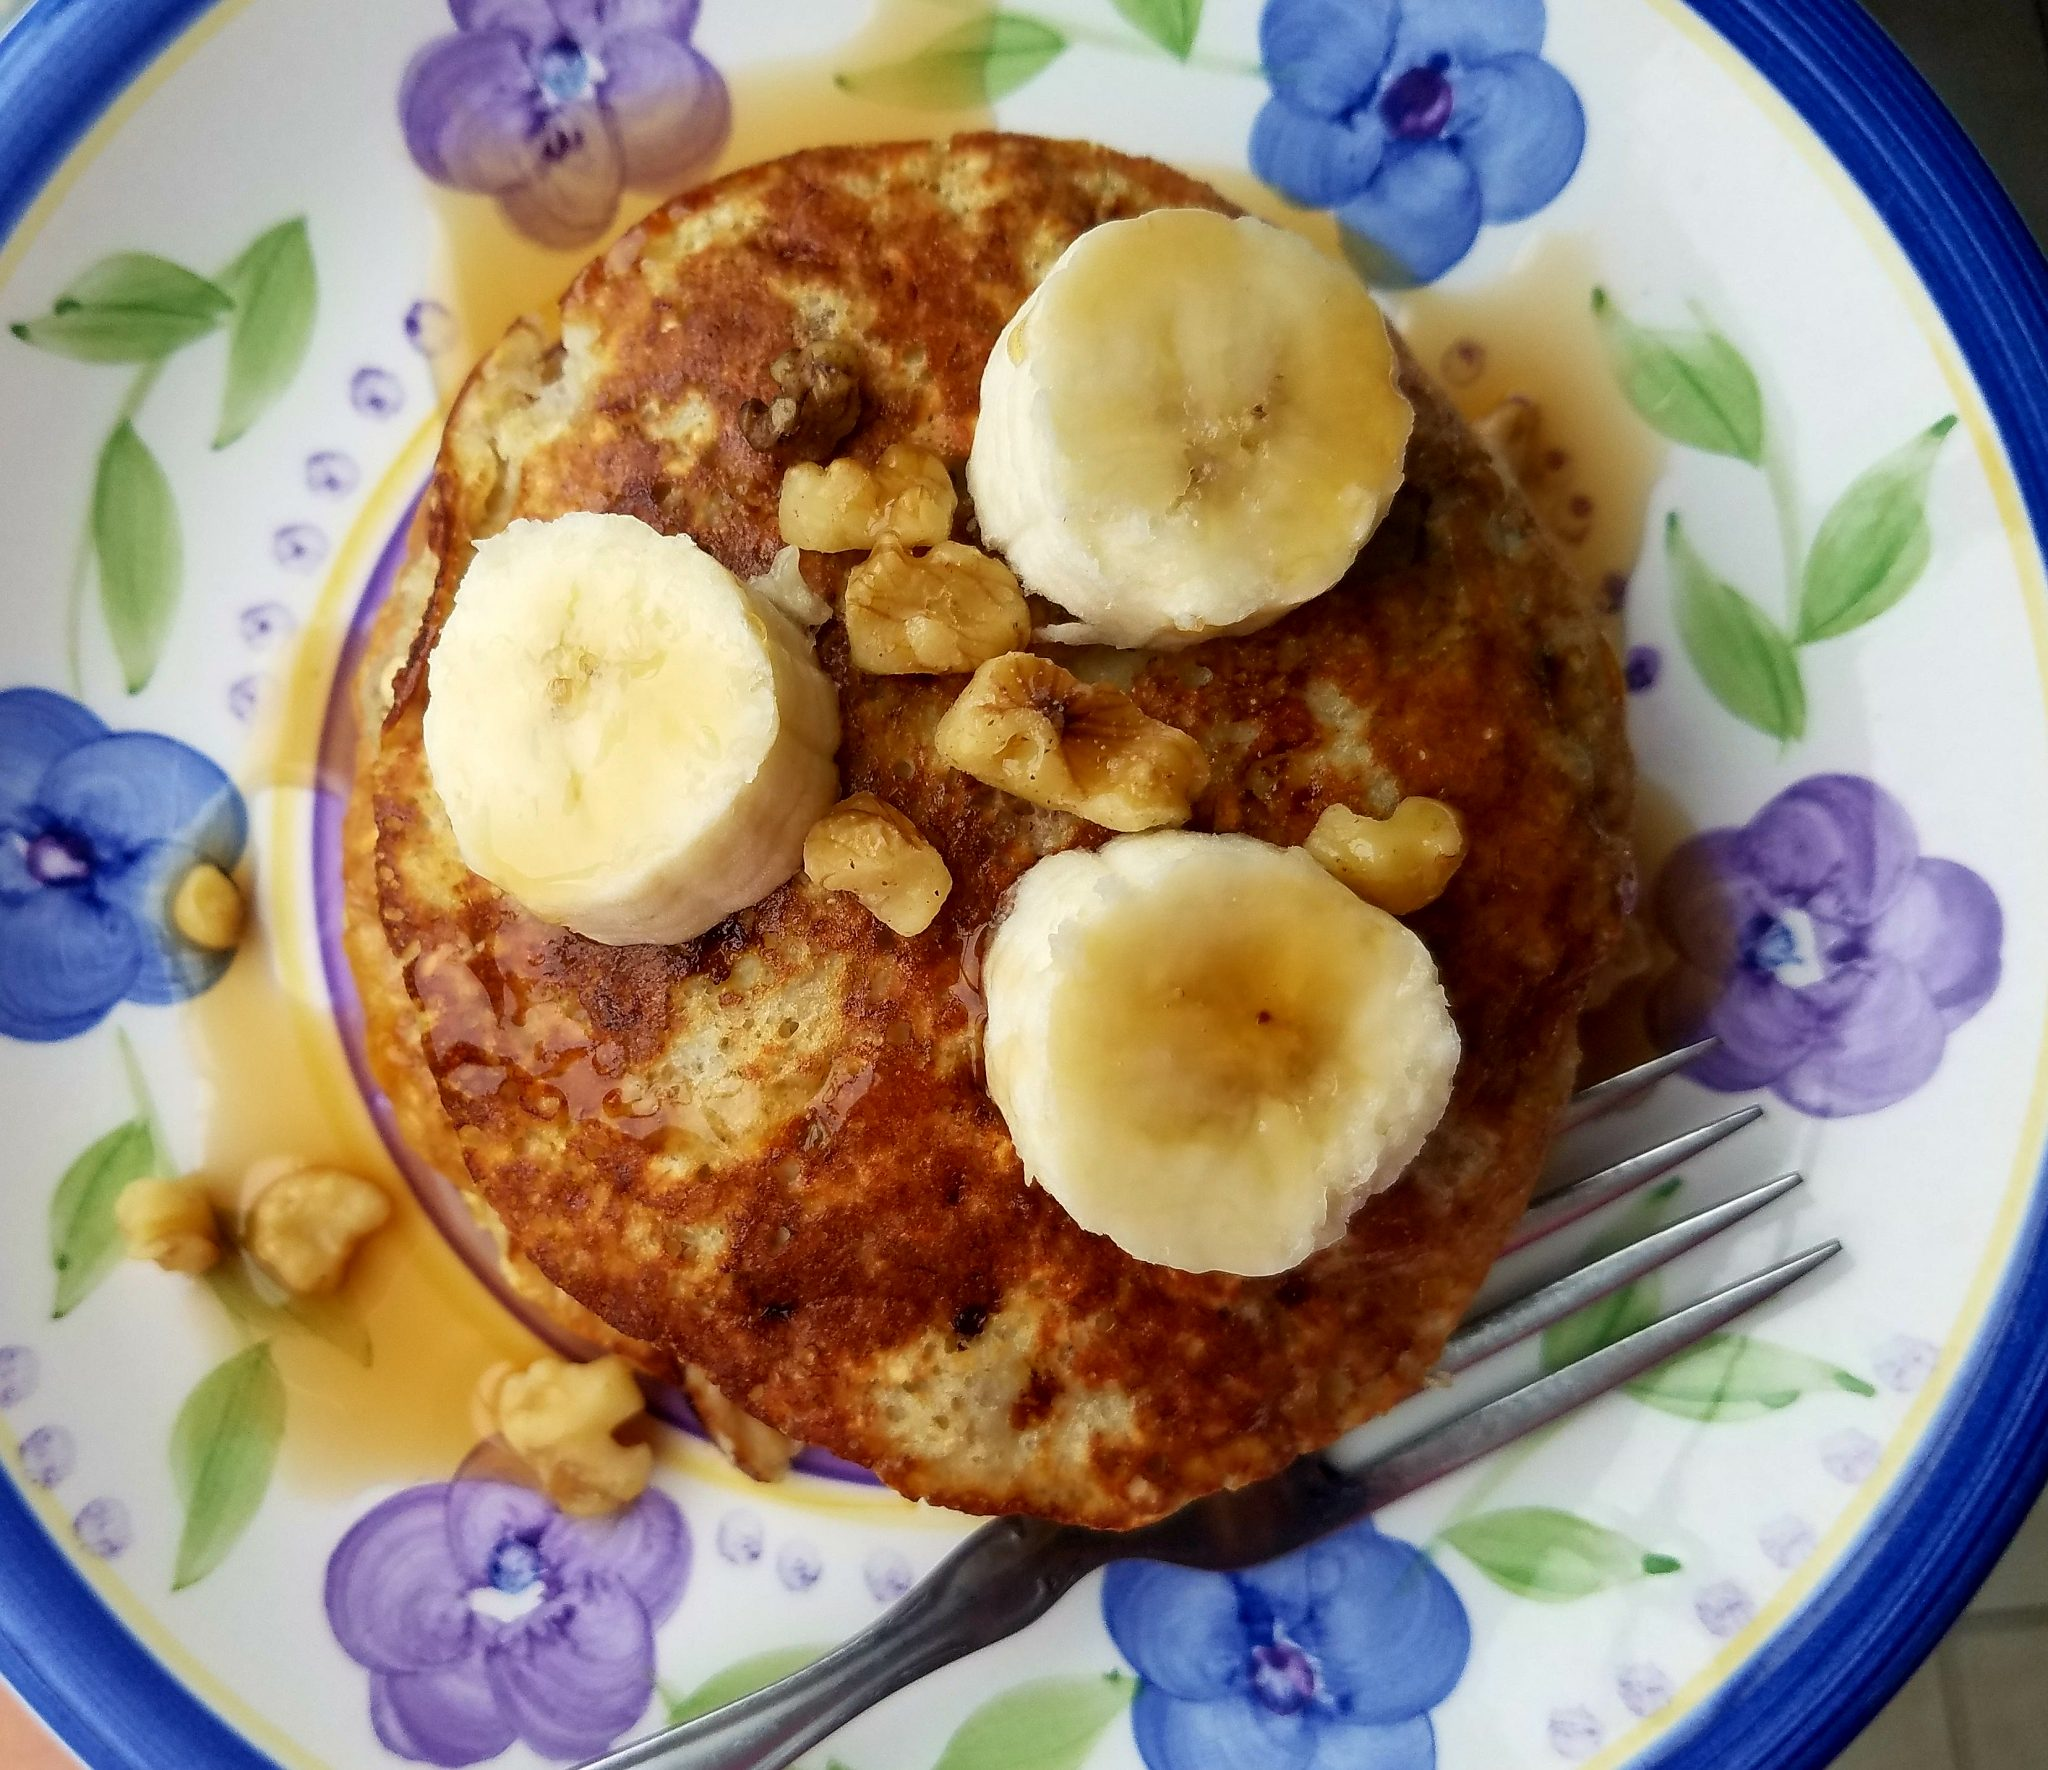 Easy 3 ingredient banana oat pancakes live well furman furman easy 3 ingredient banana oat pancakes live well furman furman university ccuart Gallery